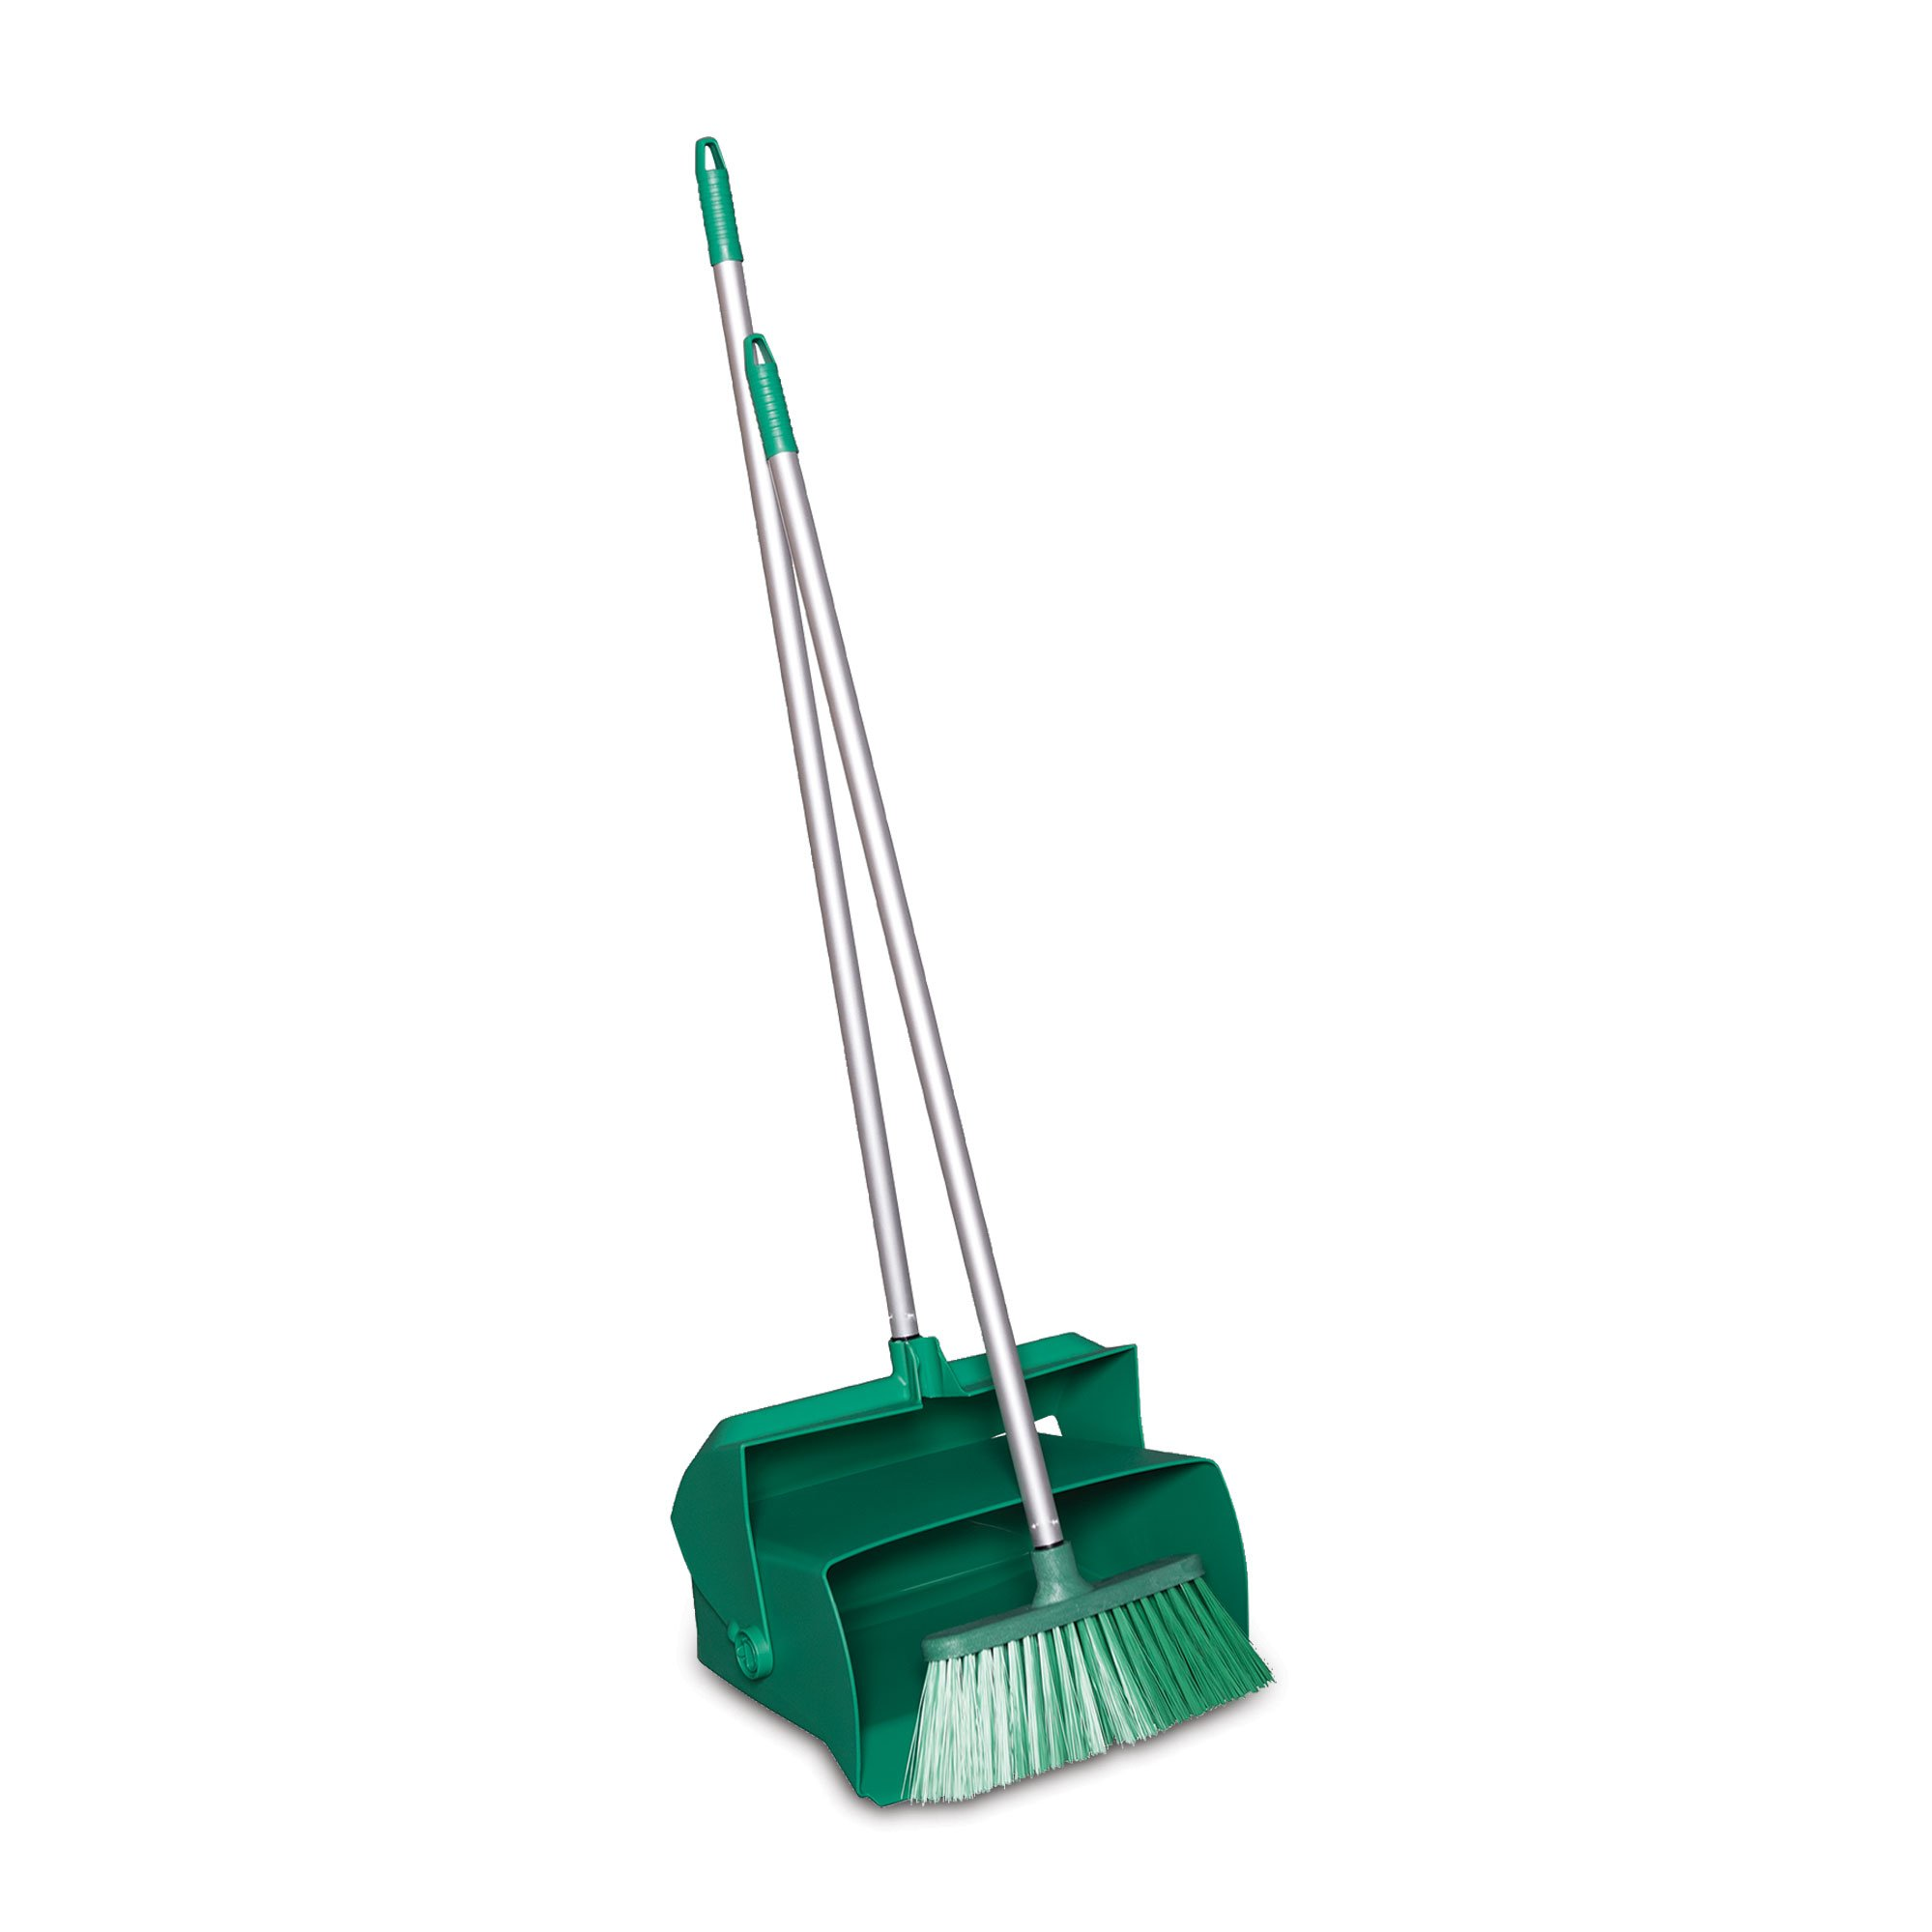 Remco 62502 Lobby Dustpan with Broom, Polypropylene/Polyester/Aluminum, 7'' X 14'' Bin, 37'' Handle, Green by Remco (Image #1)